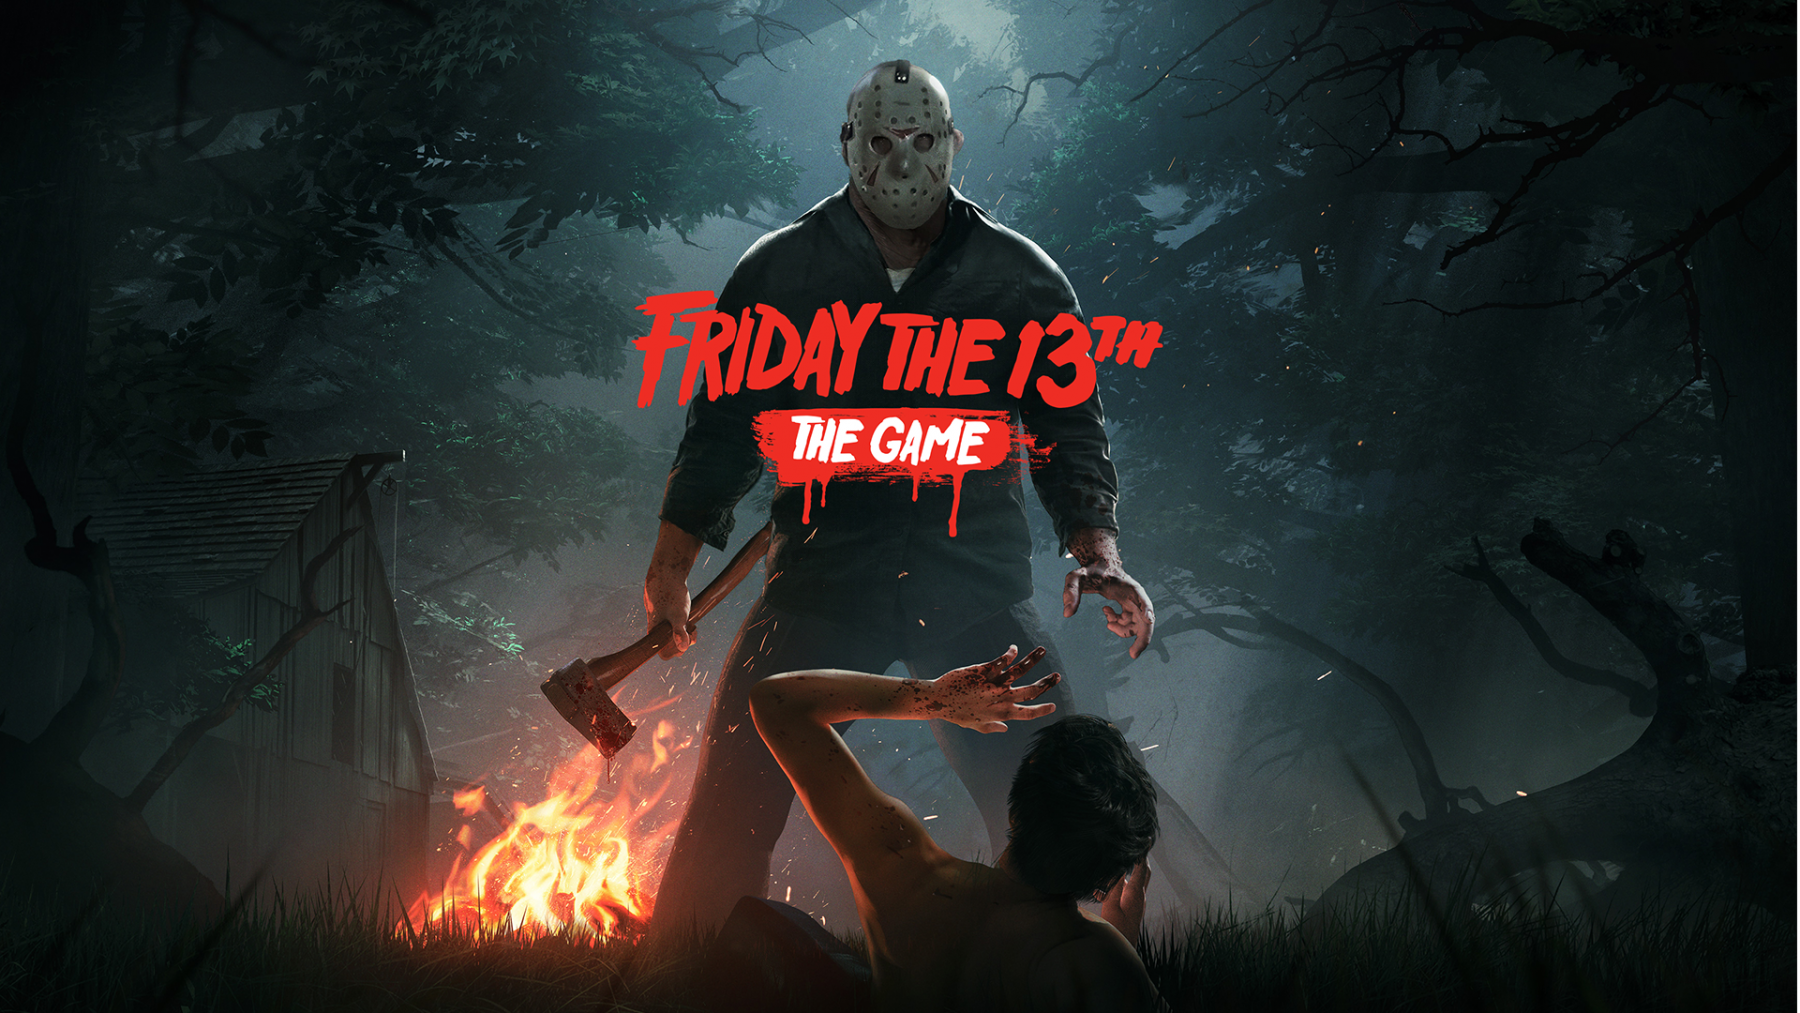 Igrao sam: FRIDAY THE 13TH: THE GAME